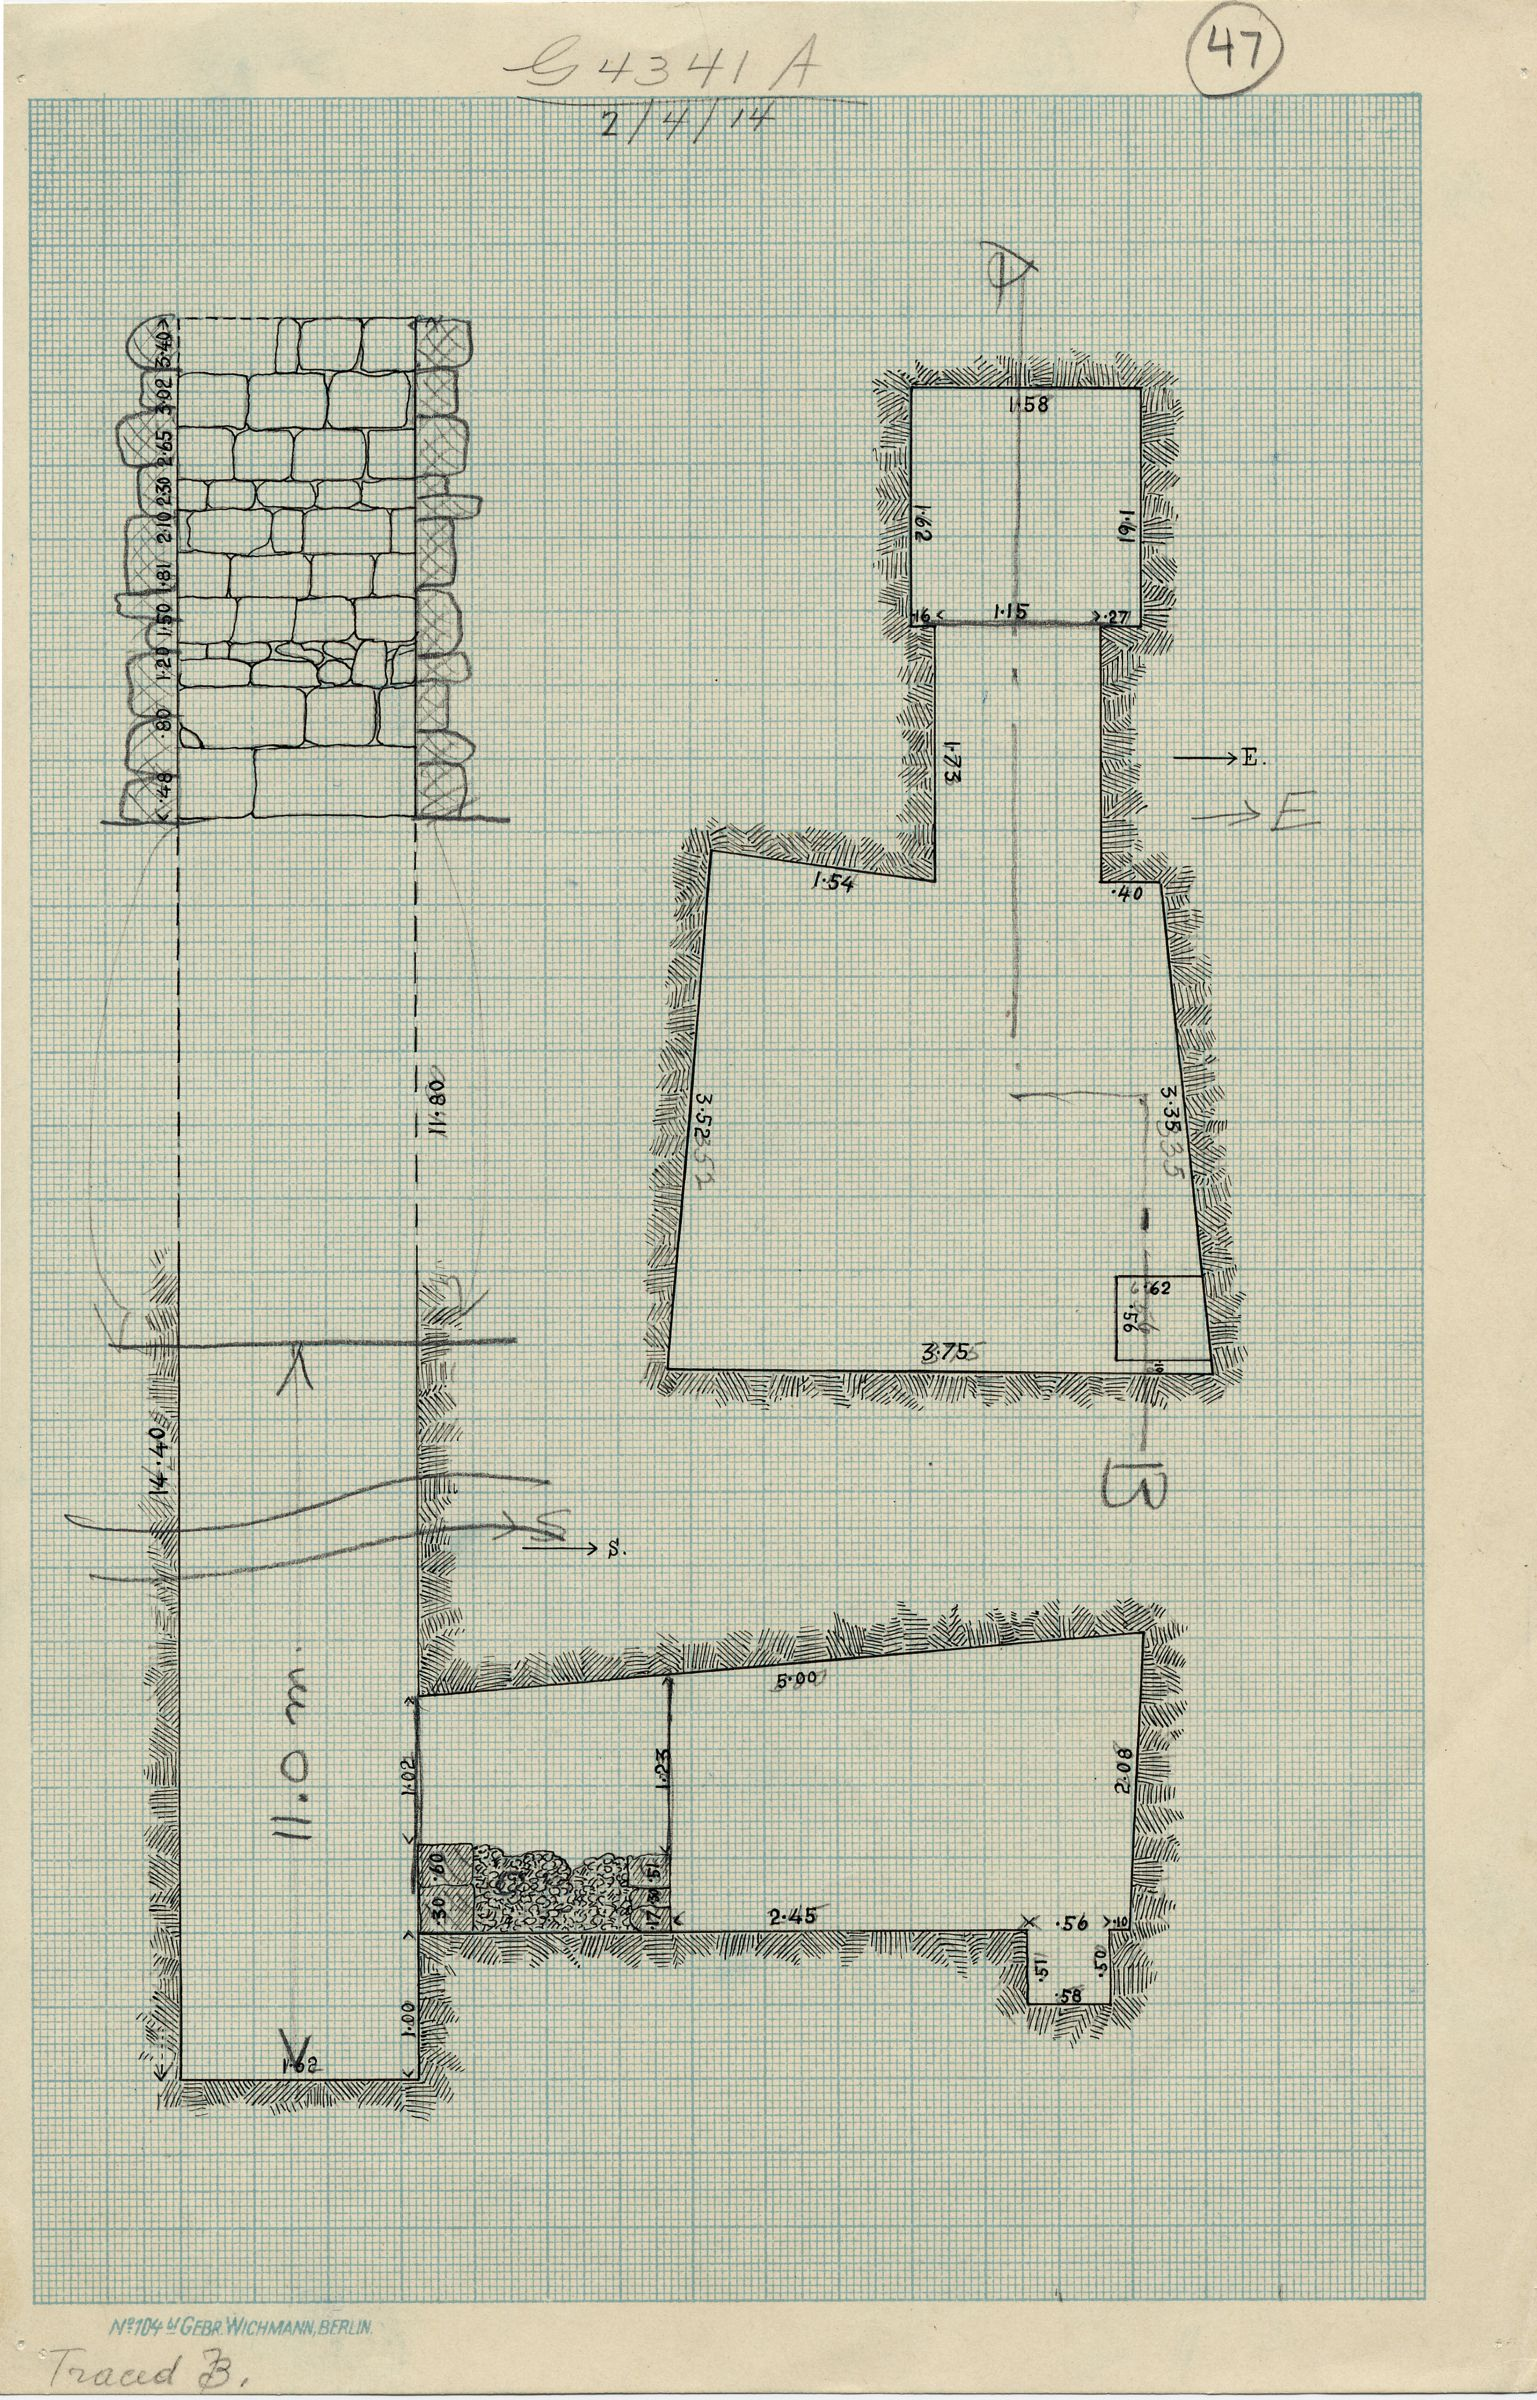 Maps and plans: G 4341, Shaft A